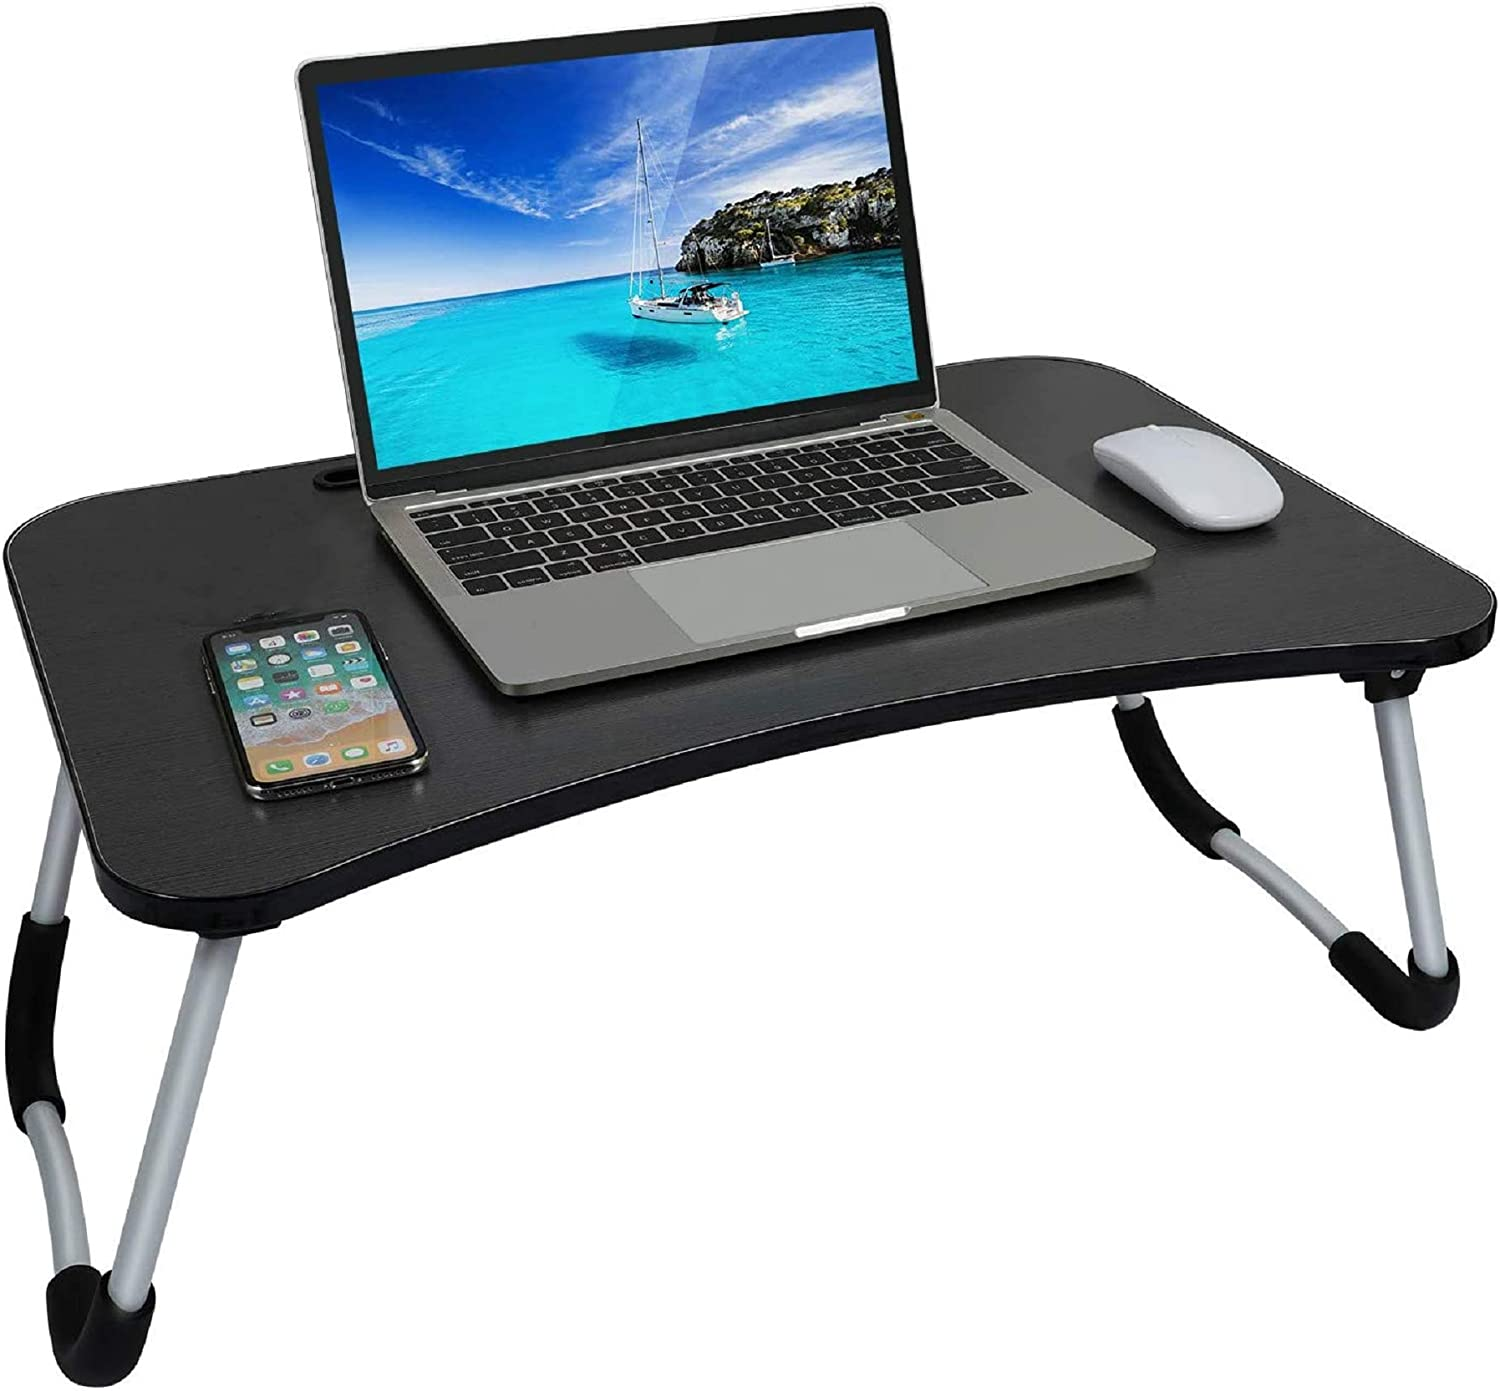 Foldable Bed Tray Lap Desk Portable Lap Desk with Phone Slots Notebook Table Dorm Desk Small Desk Folding Dormitory Table Perfect for Watching Movie on Bed Or As Personal Dinning Table, Black